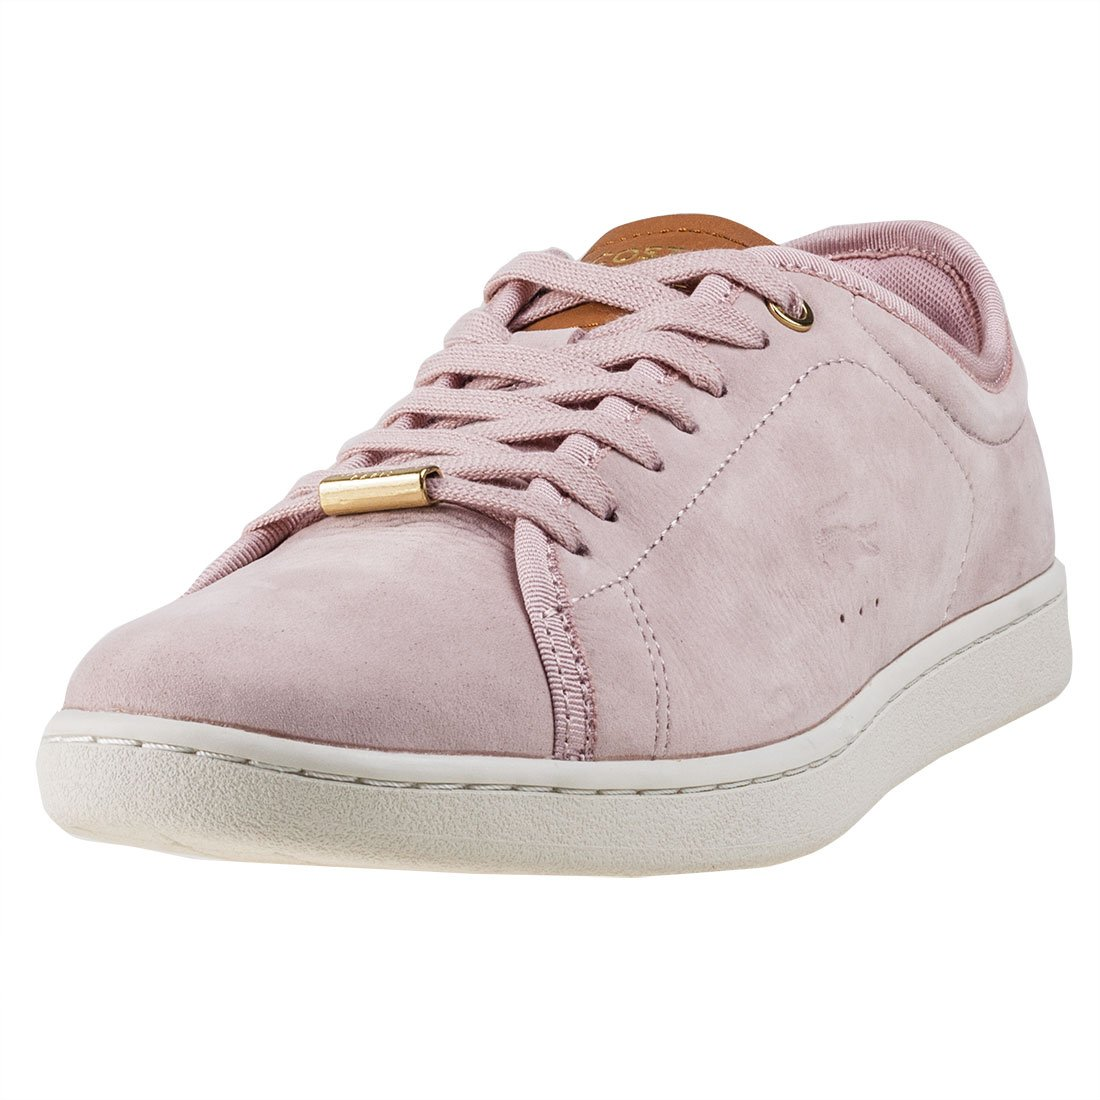 7a8f0448d Lacoste Carnaby Evo 417 Womens Trainers Light Pink - 3 UK  Amazon.co.uk   Shoes   Bags